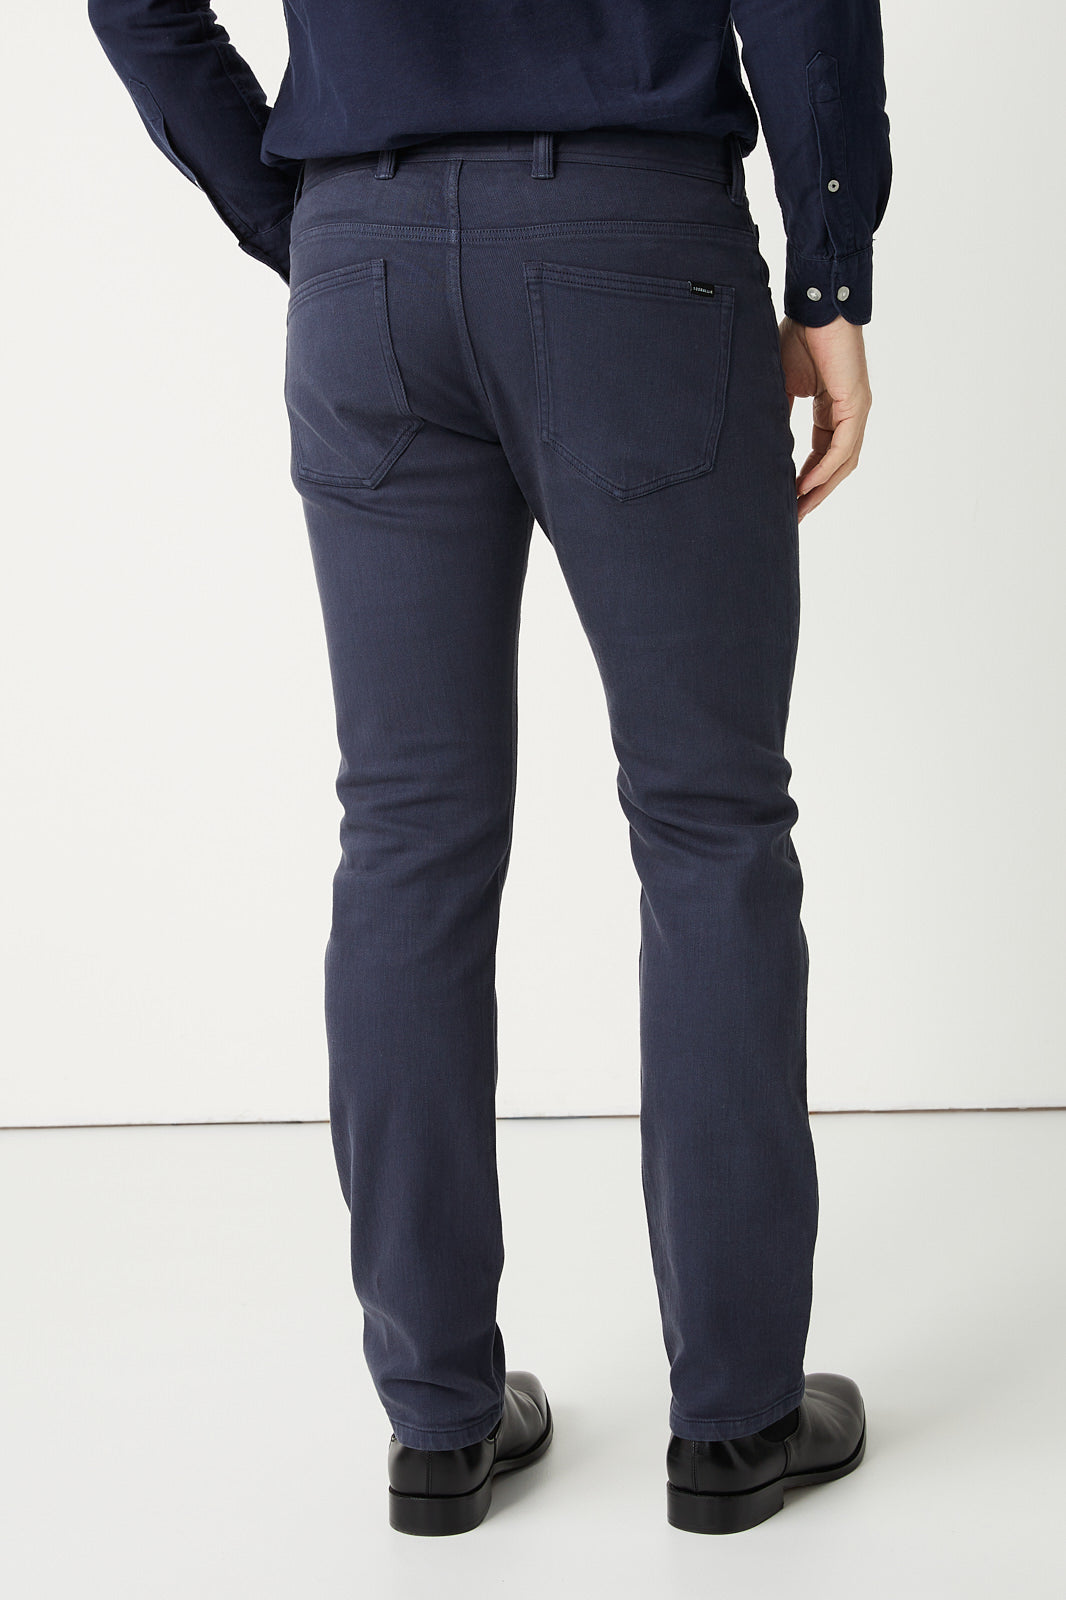 Ando Regular Straight Leg Jean in Blue Stone or Black